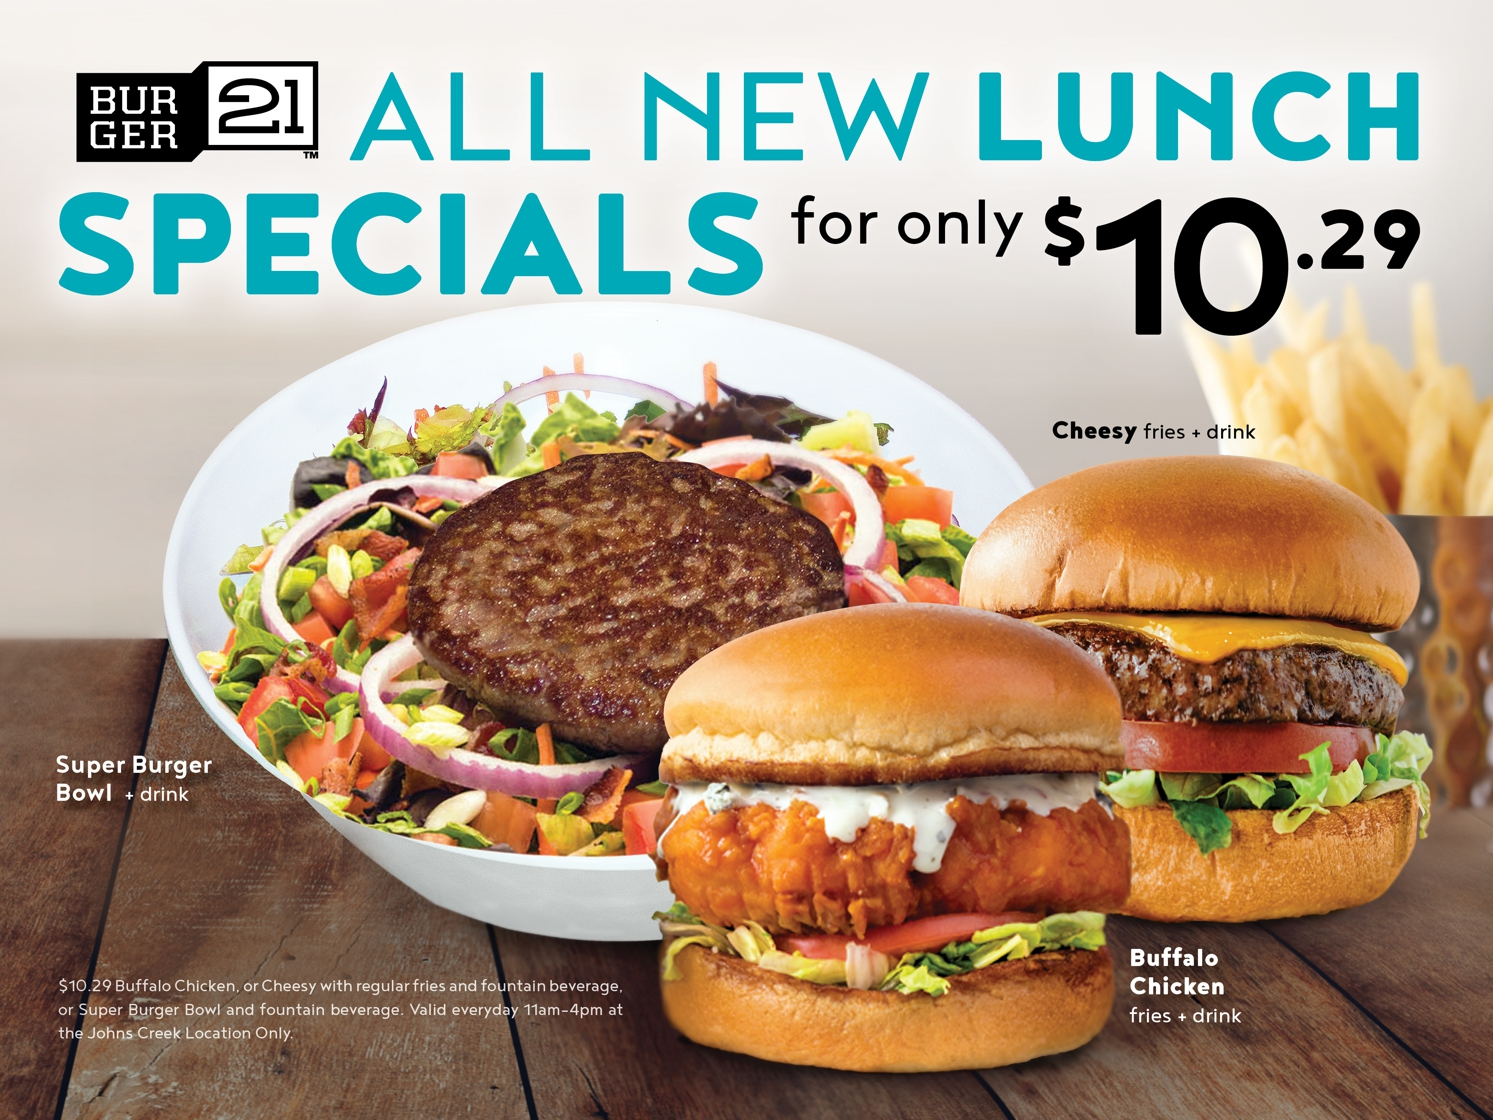 All New Lunch Specials!